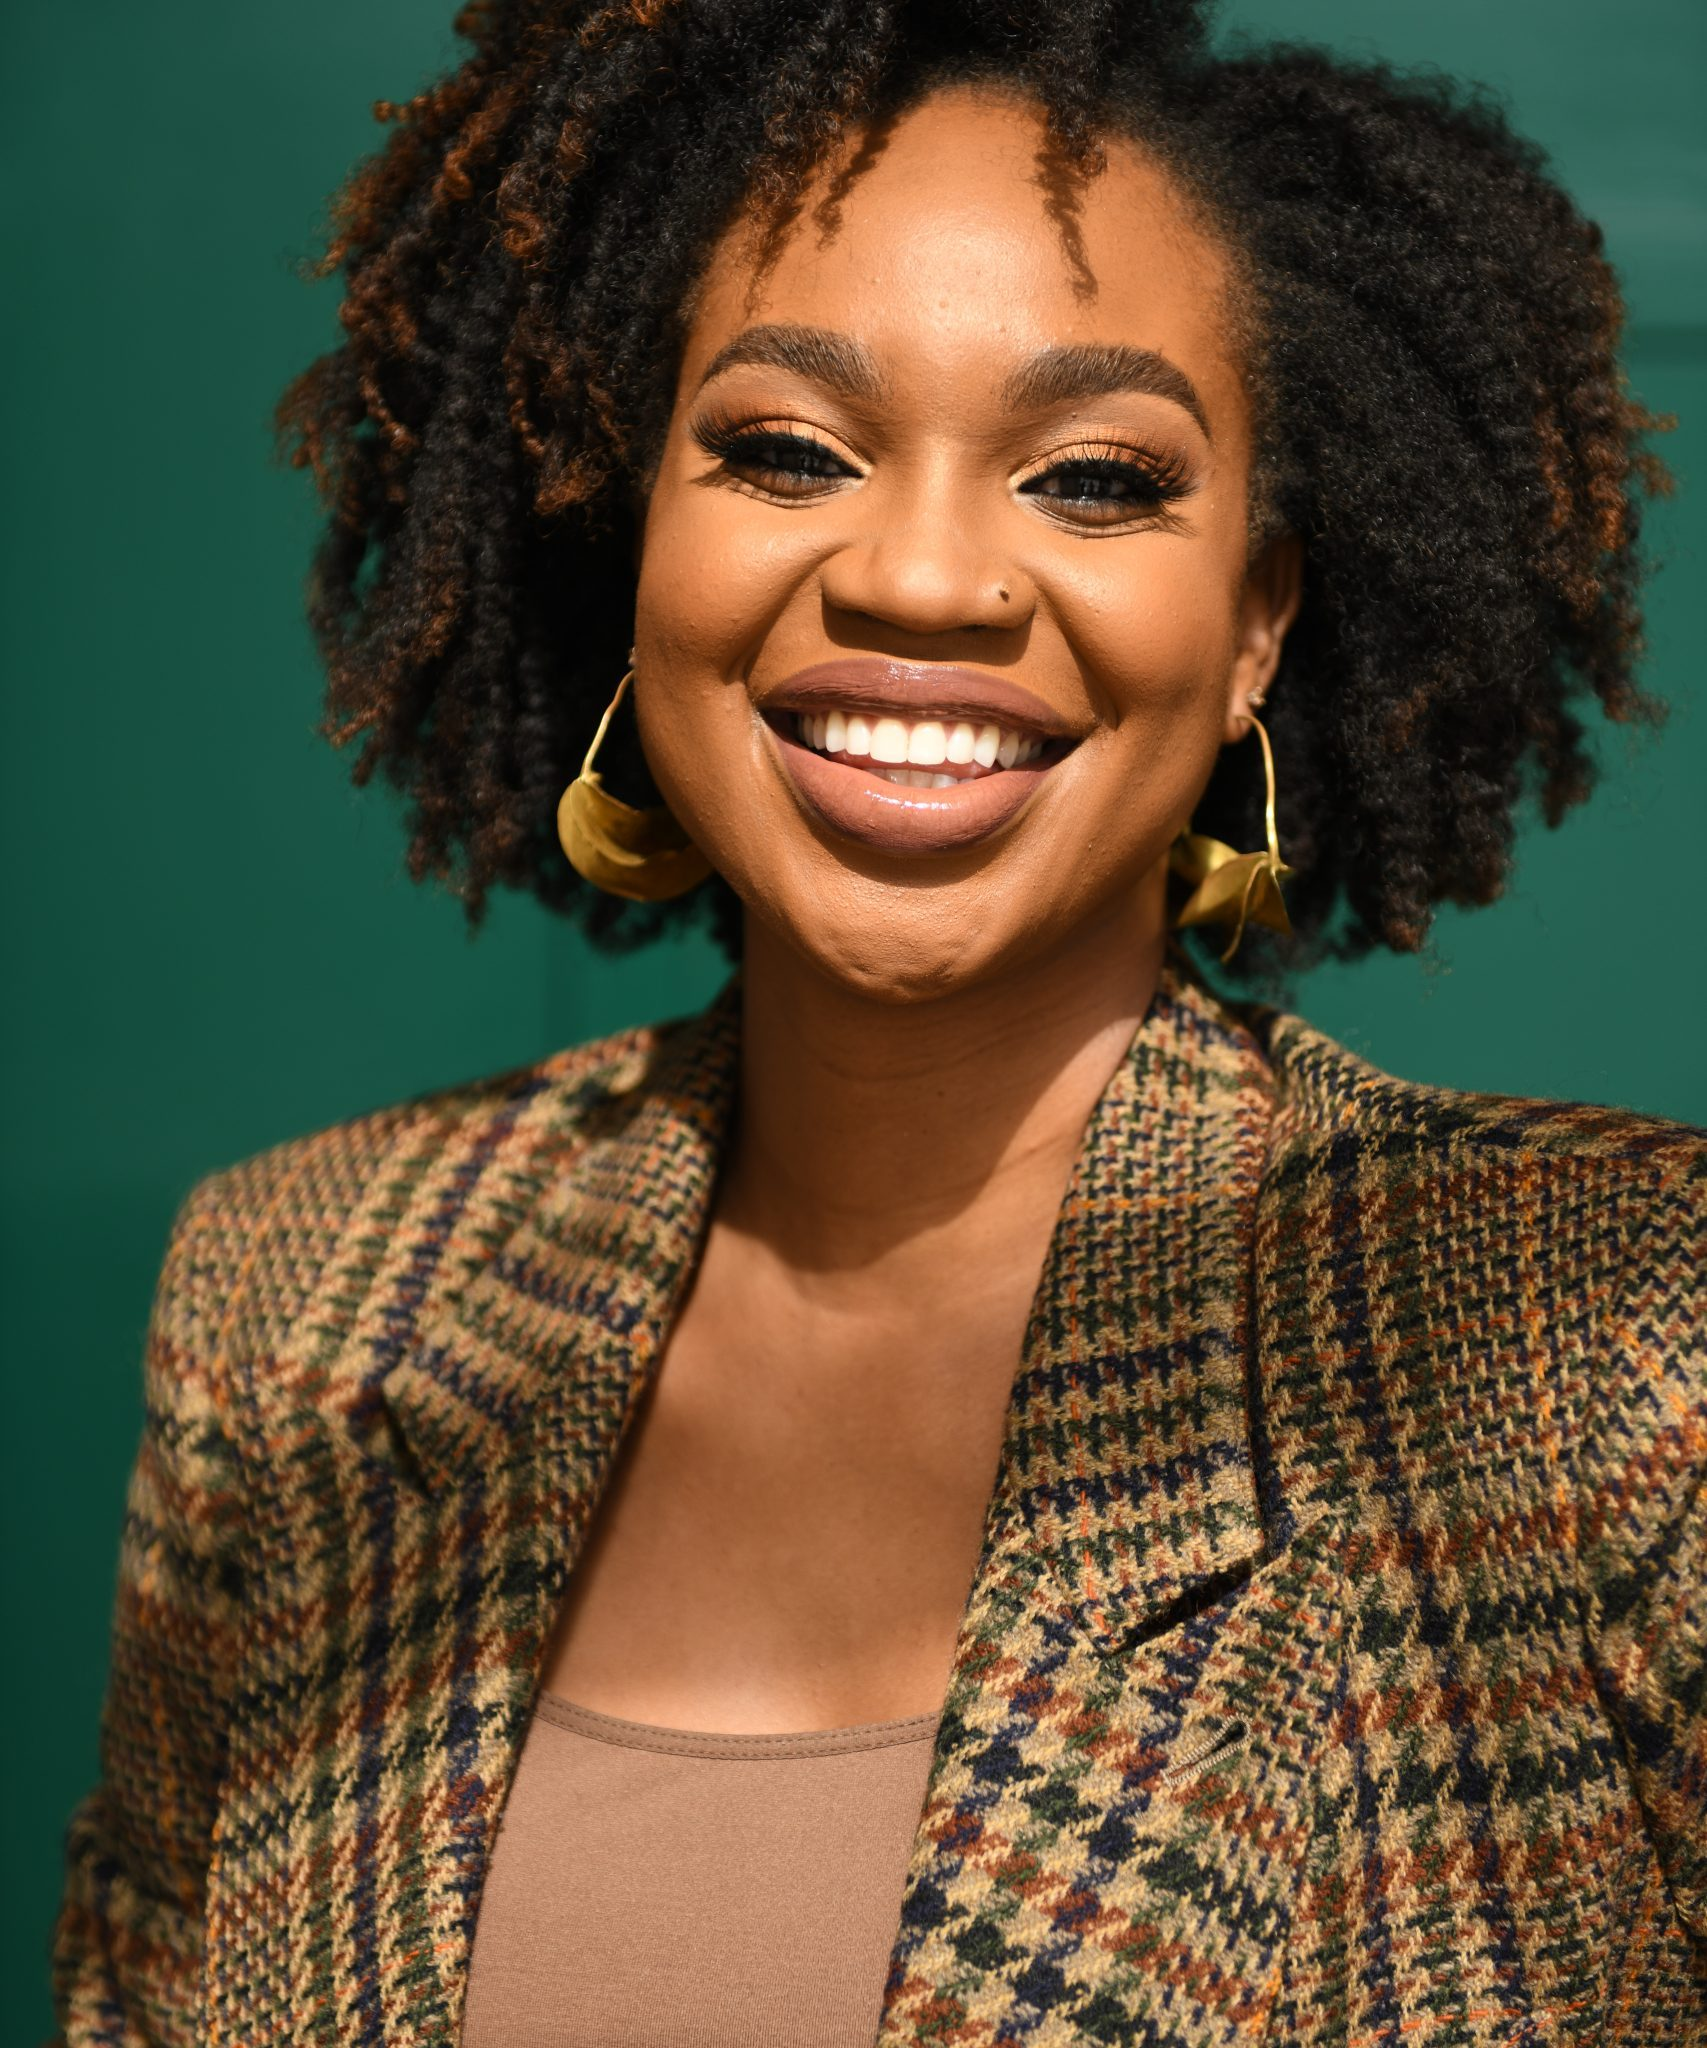 Ijeoma Kola headshot on green background